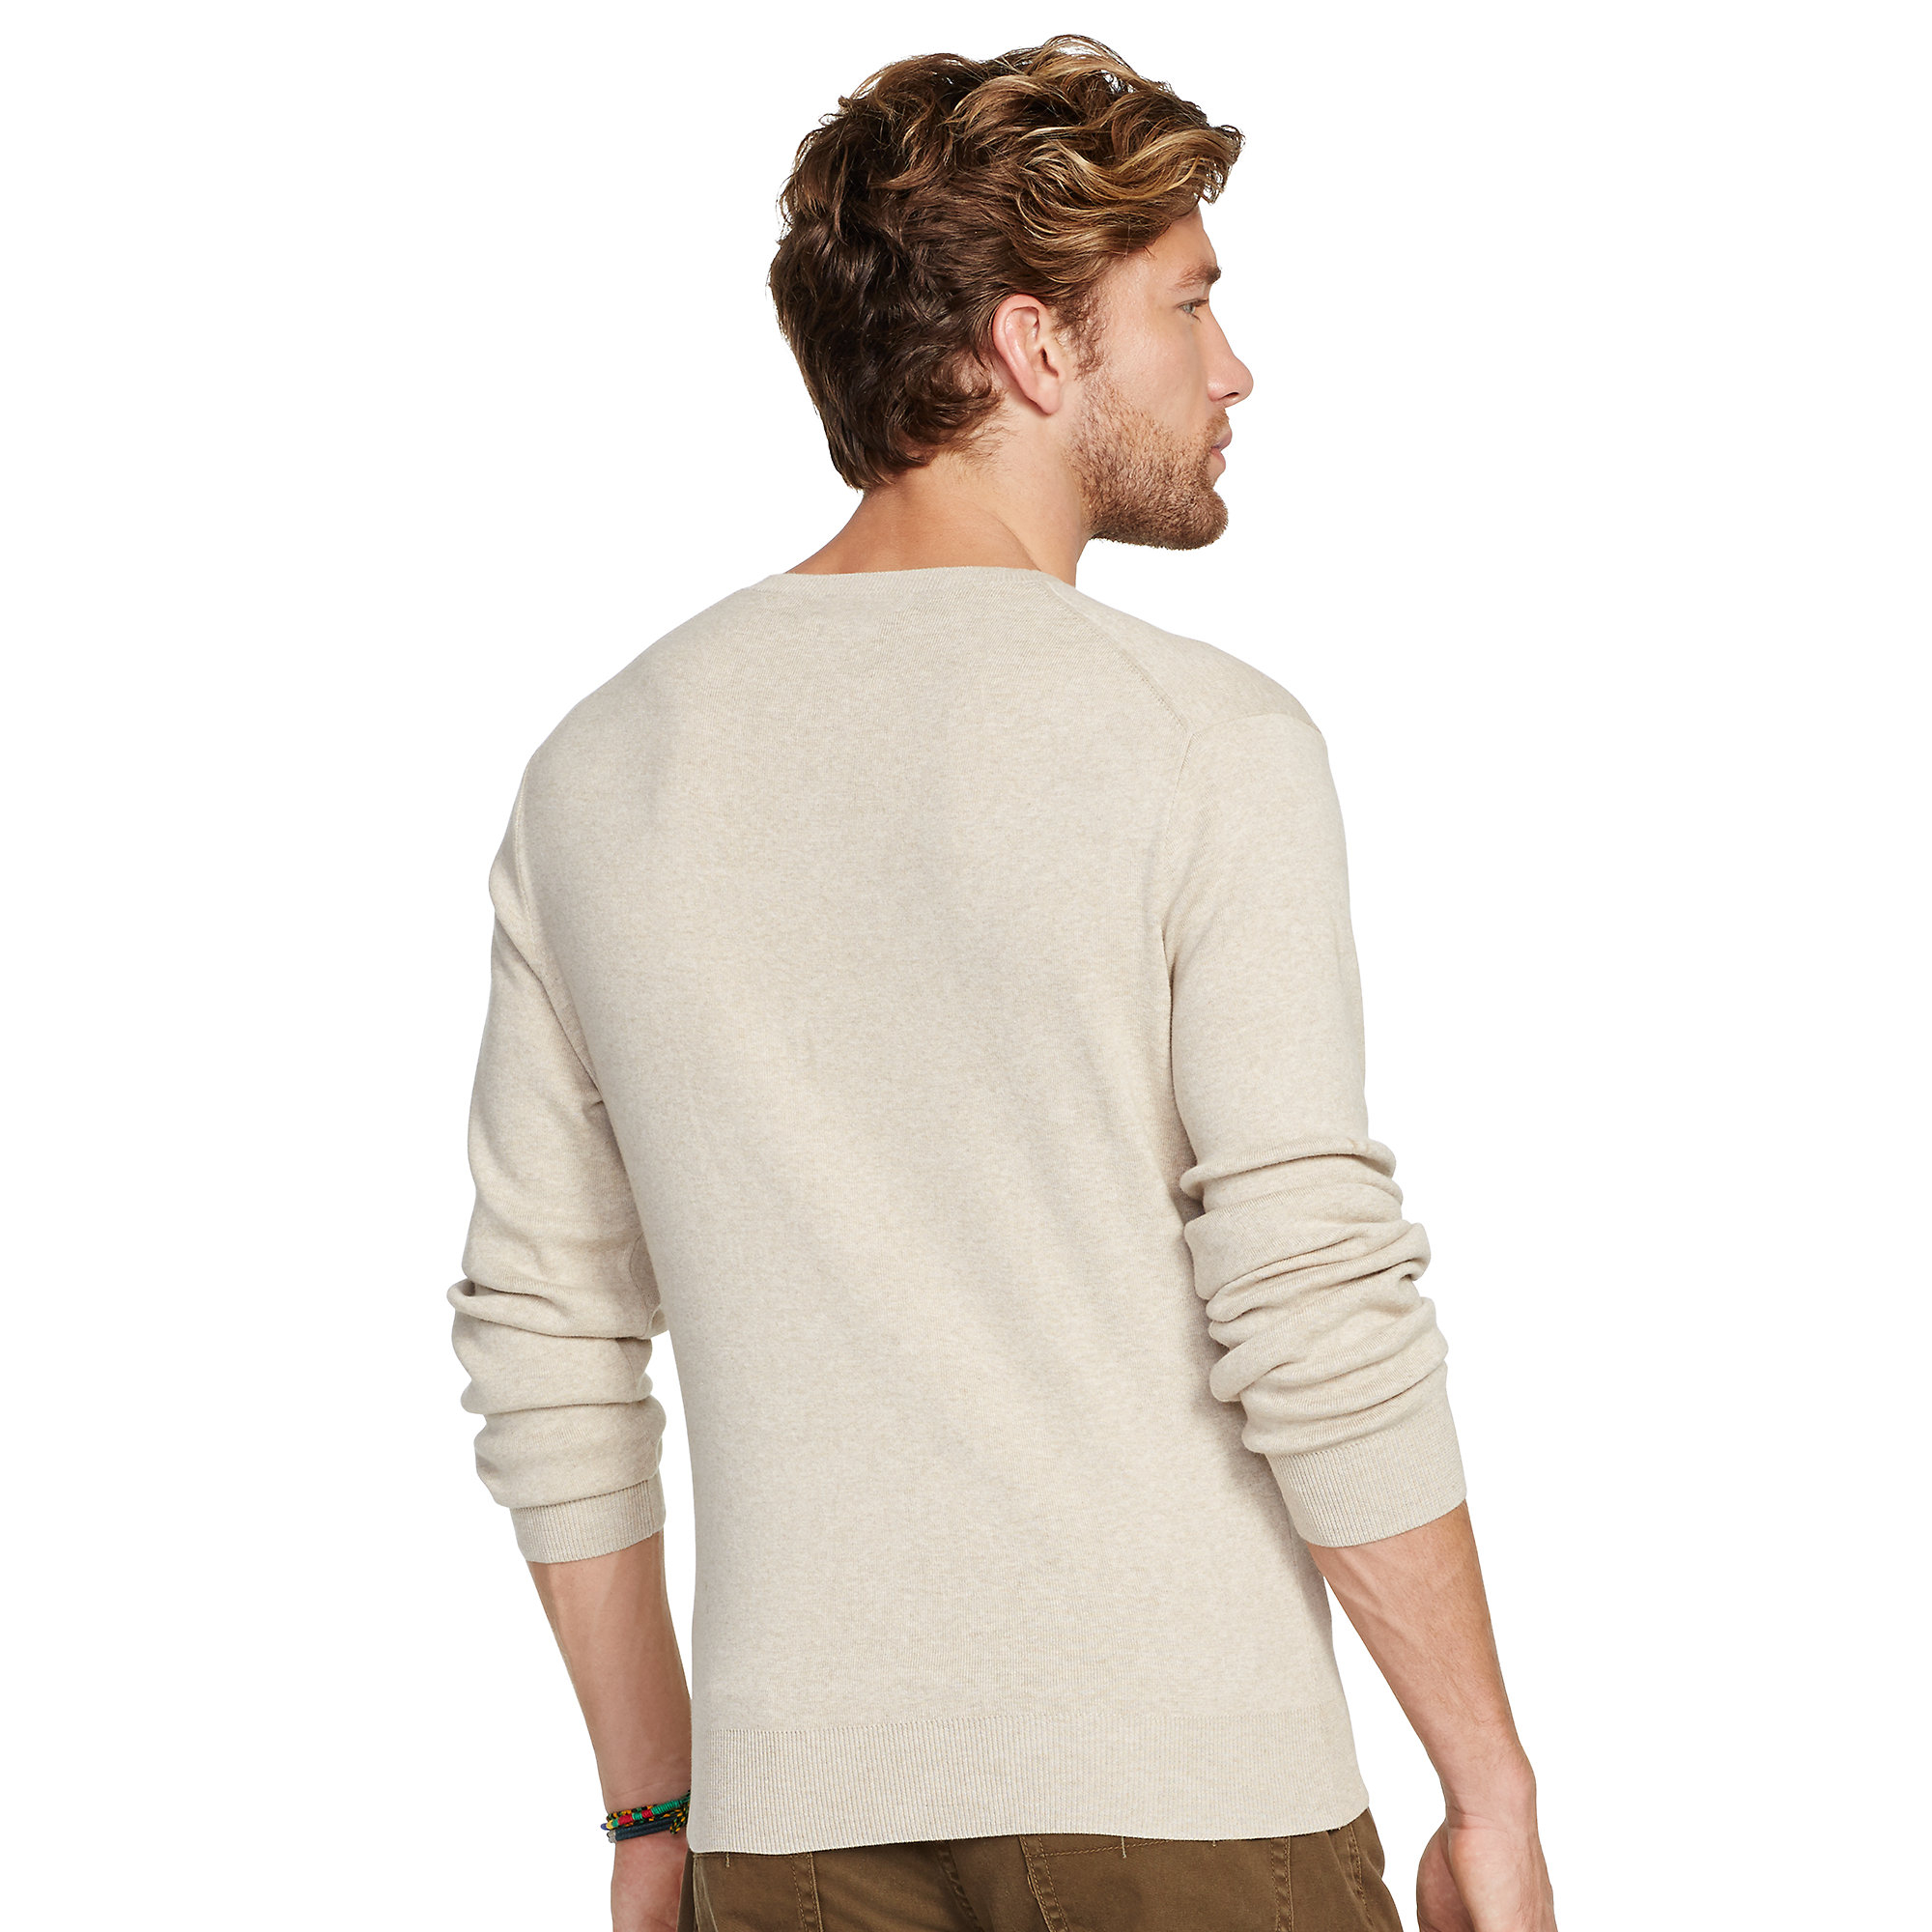 Polo Ralph Lauren. Beige Pima Cotton V-neck Sweater